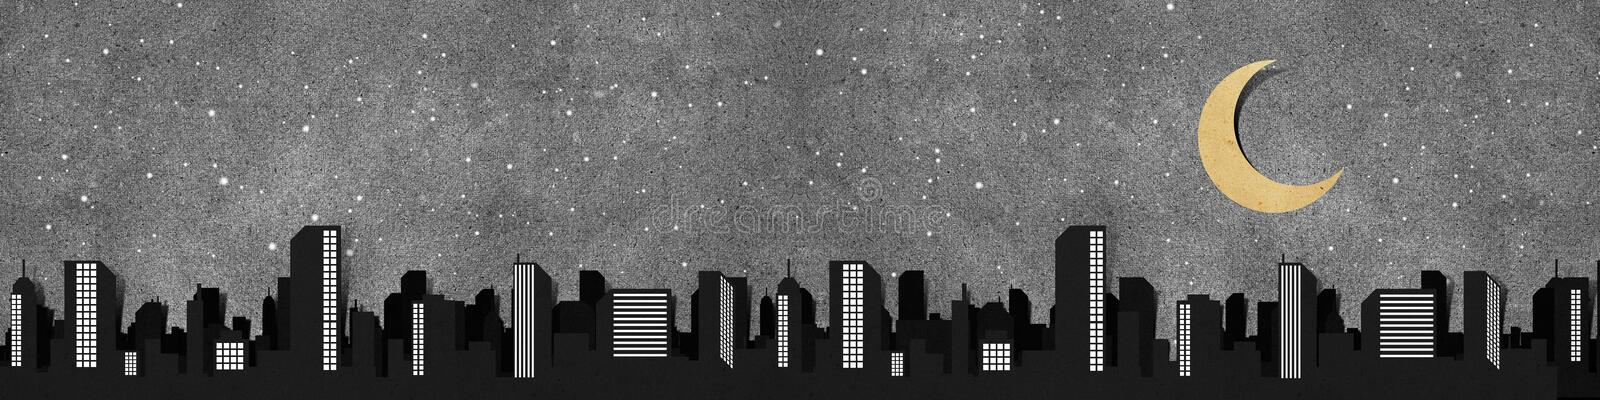 Download City Panorama Silhouettes Recycled Paper Craft . Stock Illustration - Image: 19775159